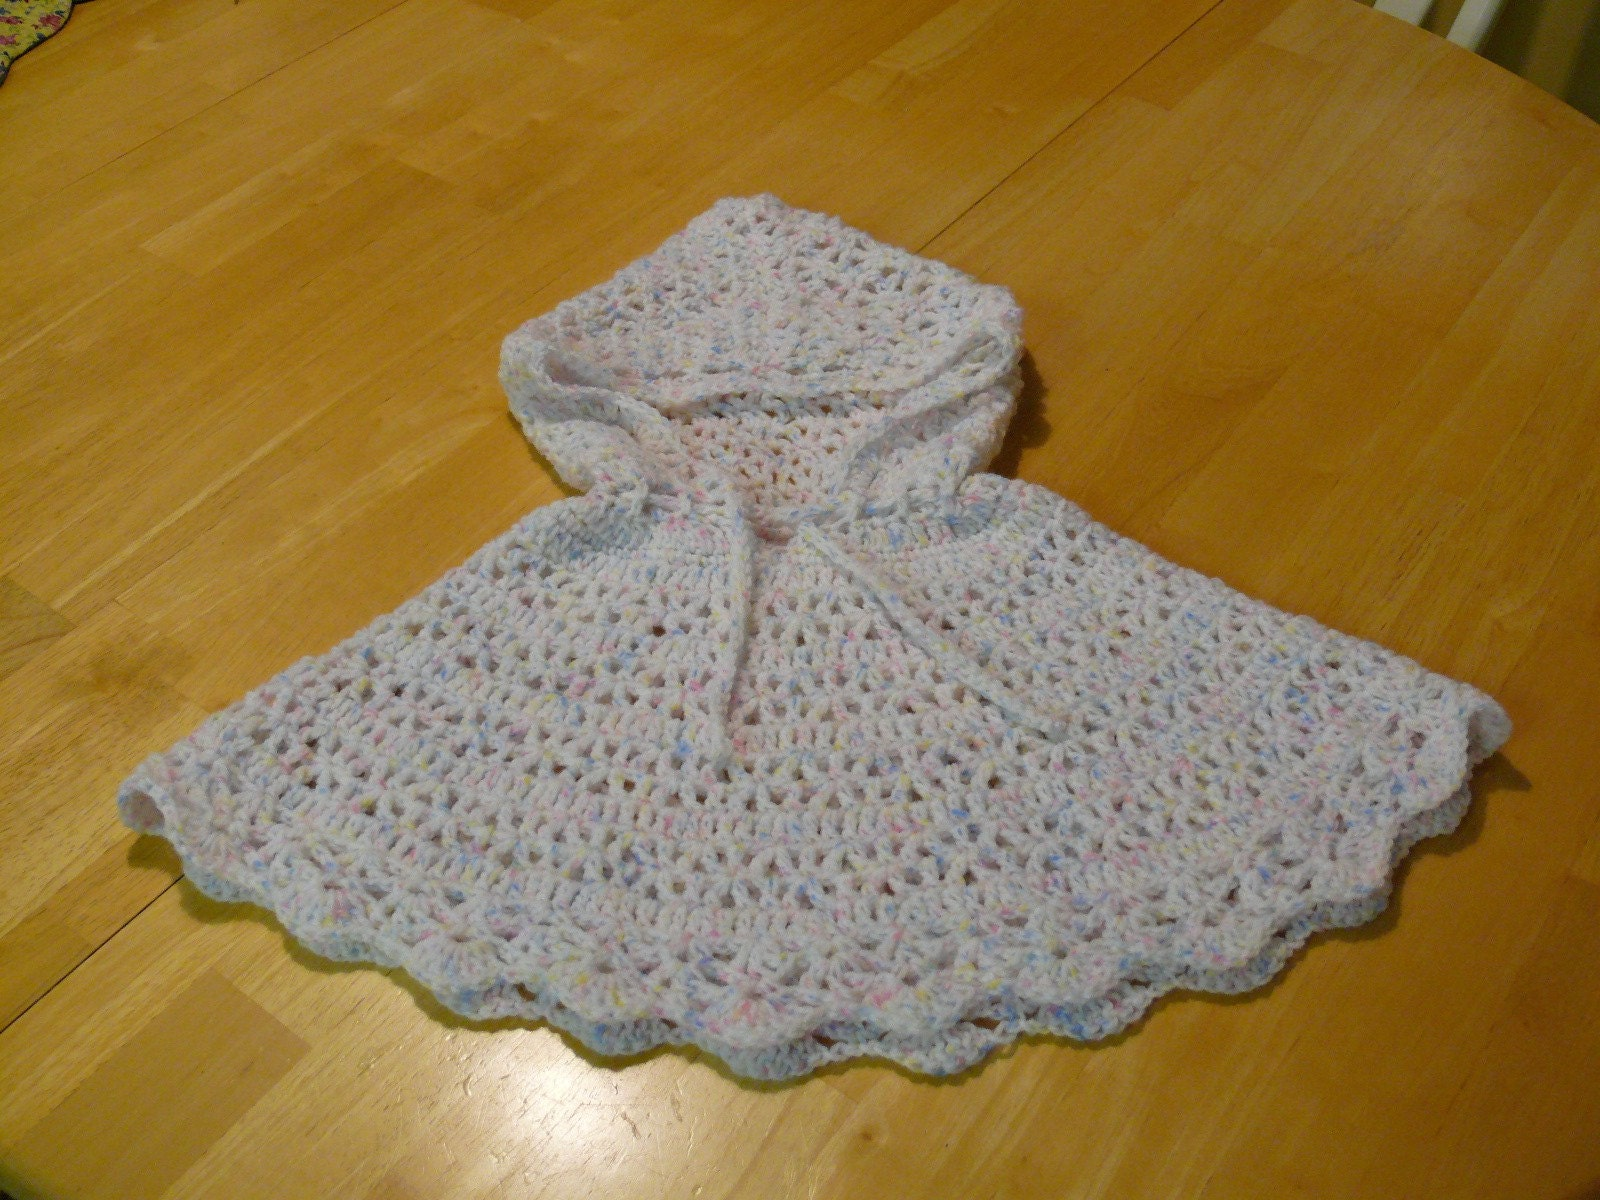 Crochet Pattern For Baby Hooded Poncho : Crochet Hooded Poncho Baby Size 6 12 Months